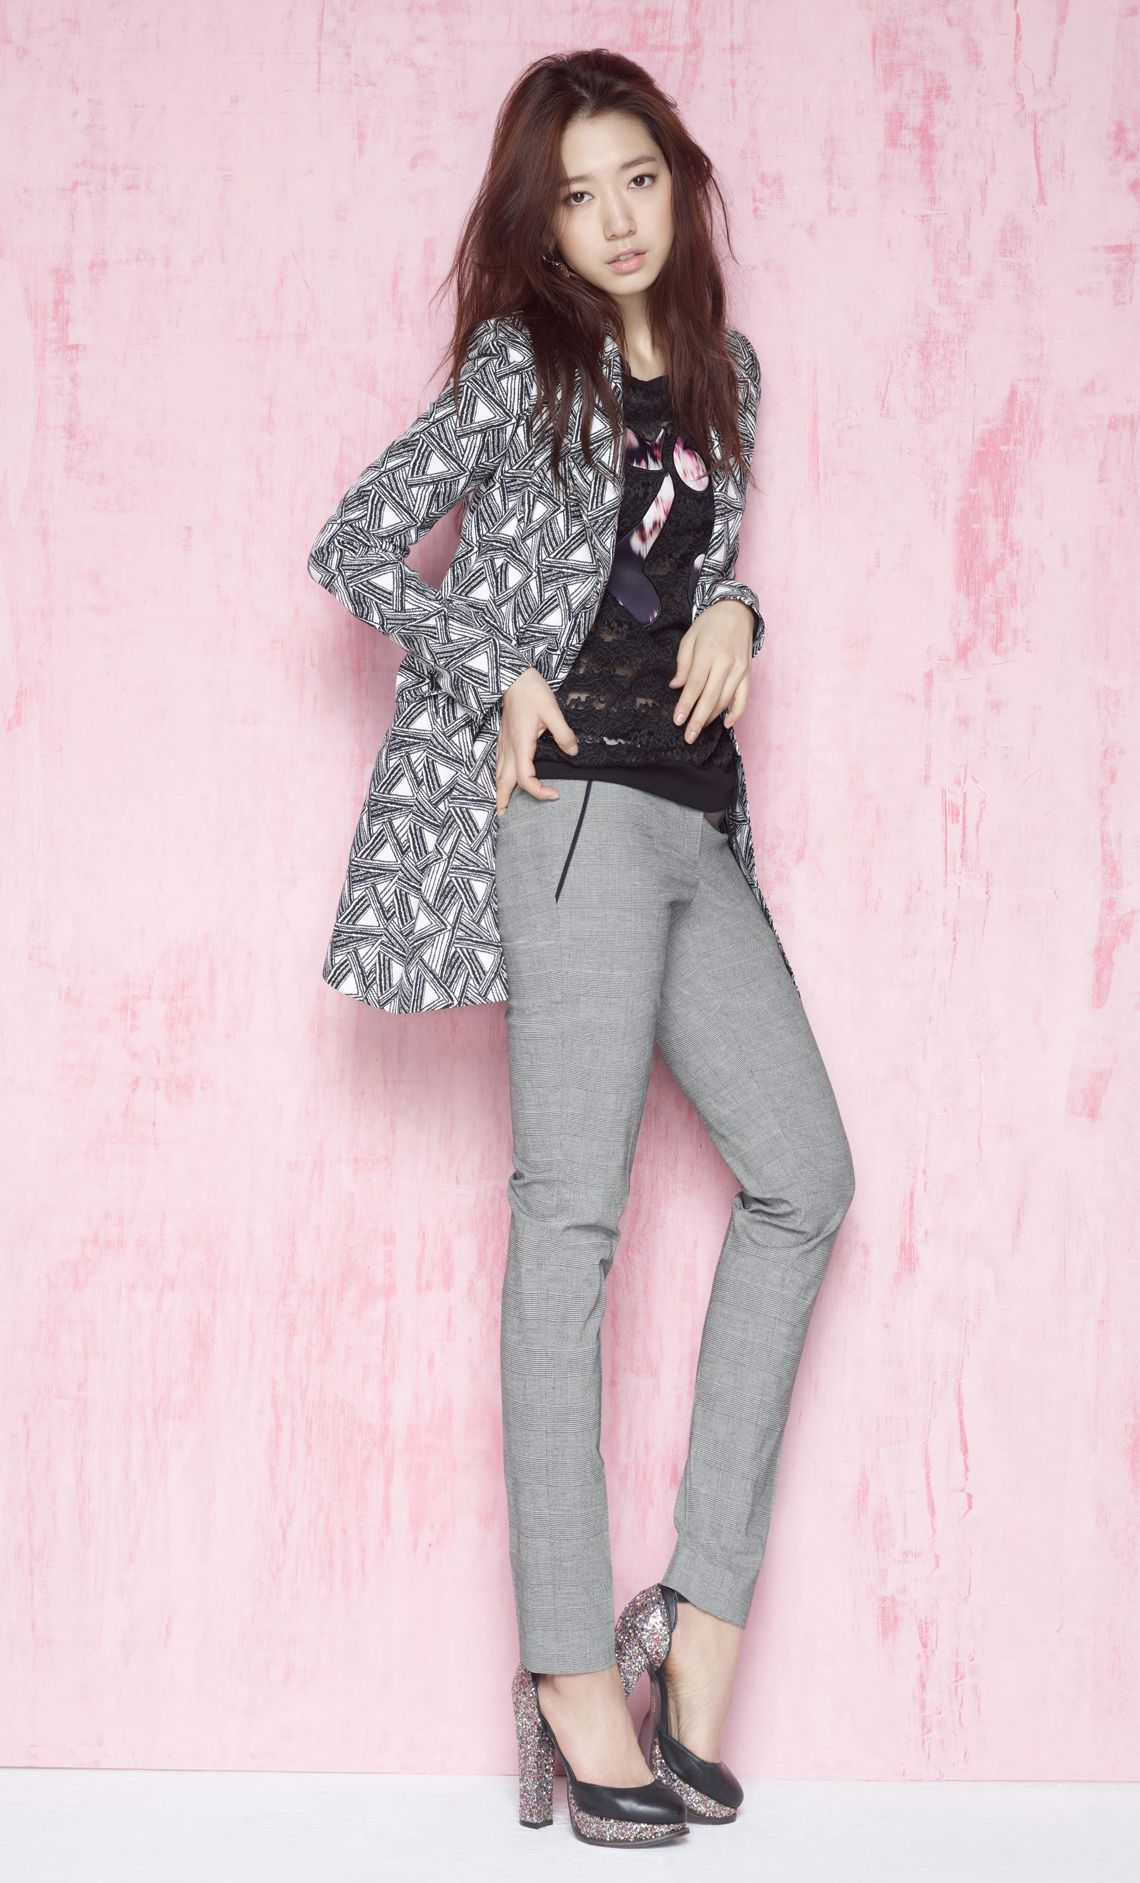 Park Shin Hye Parkshinhye Style Pinterest Pants Love And Love The